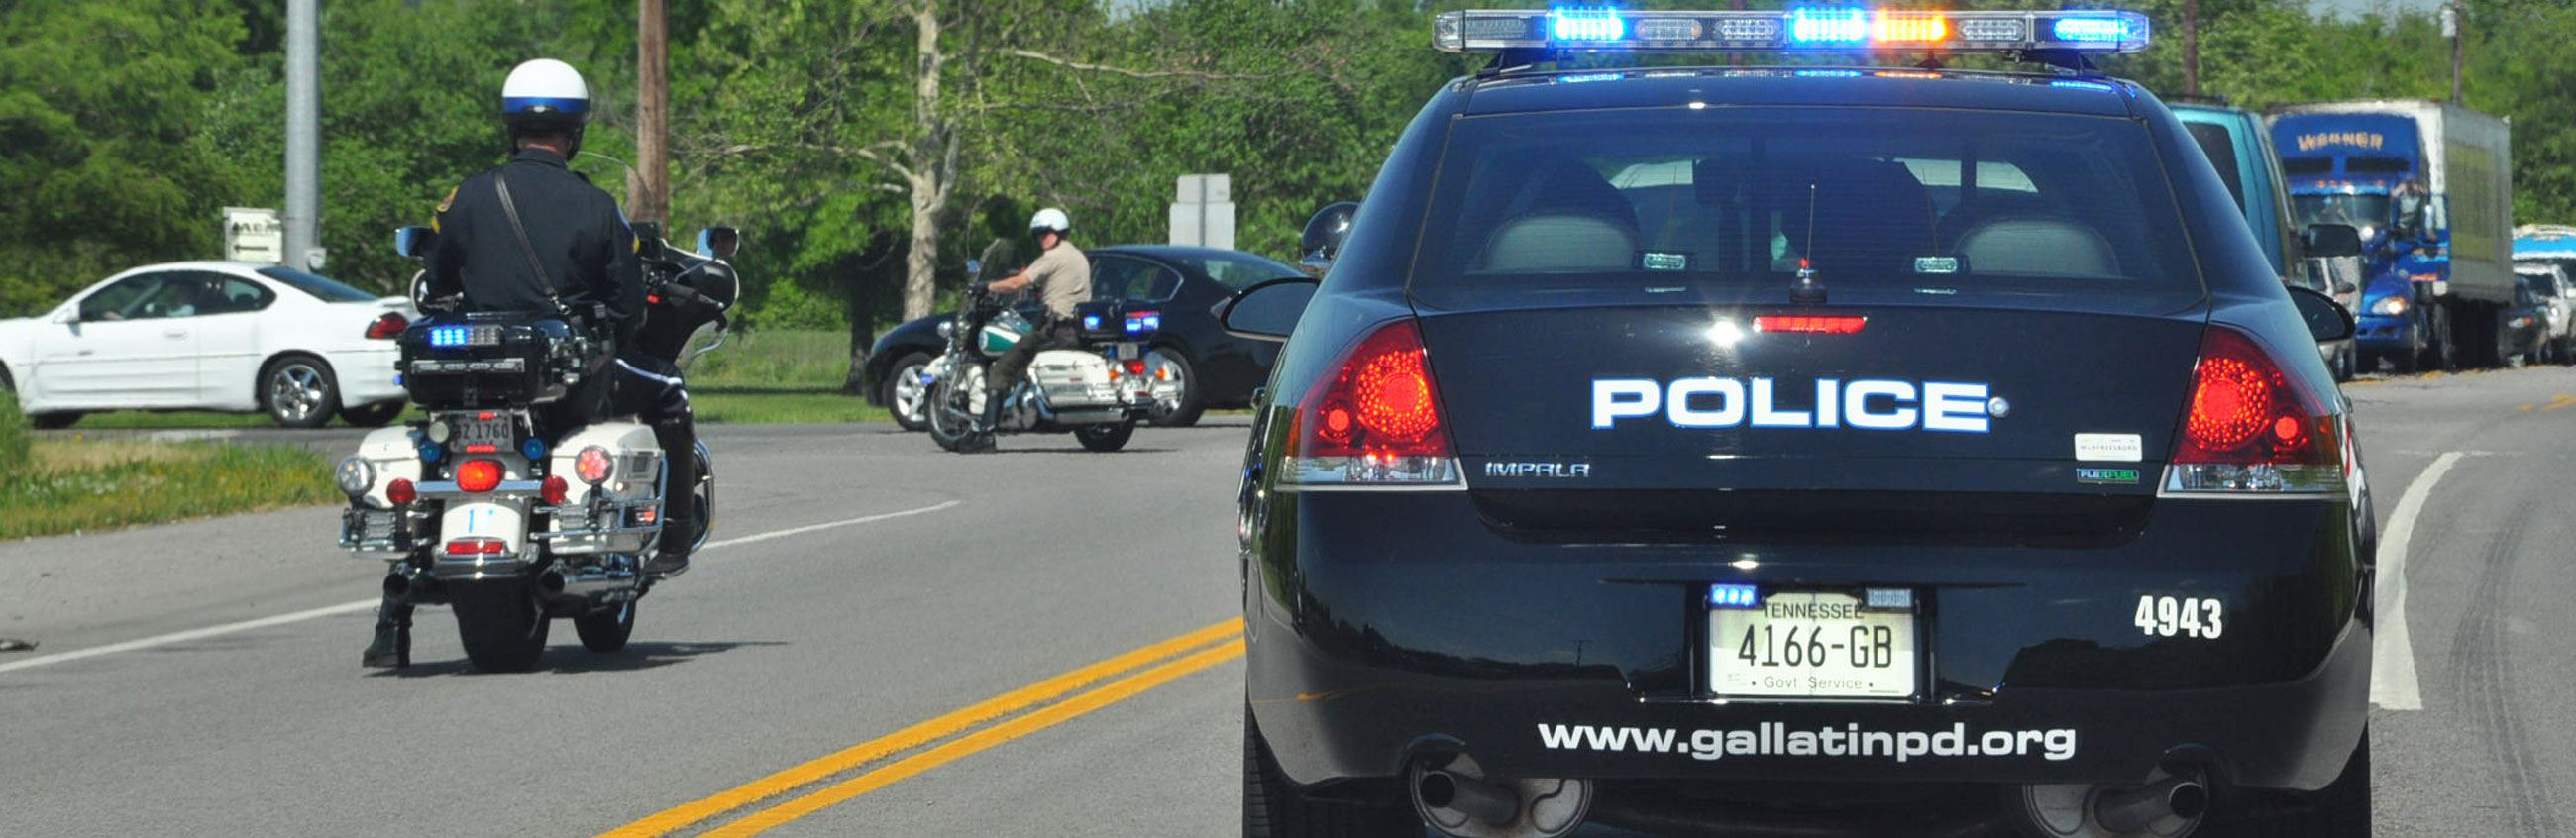 GPD Police Car and Motorcycle